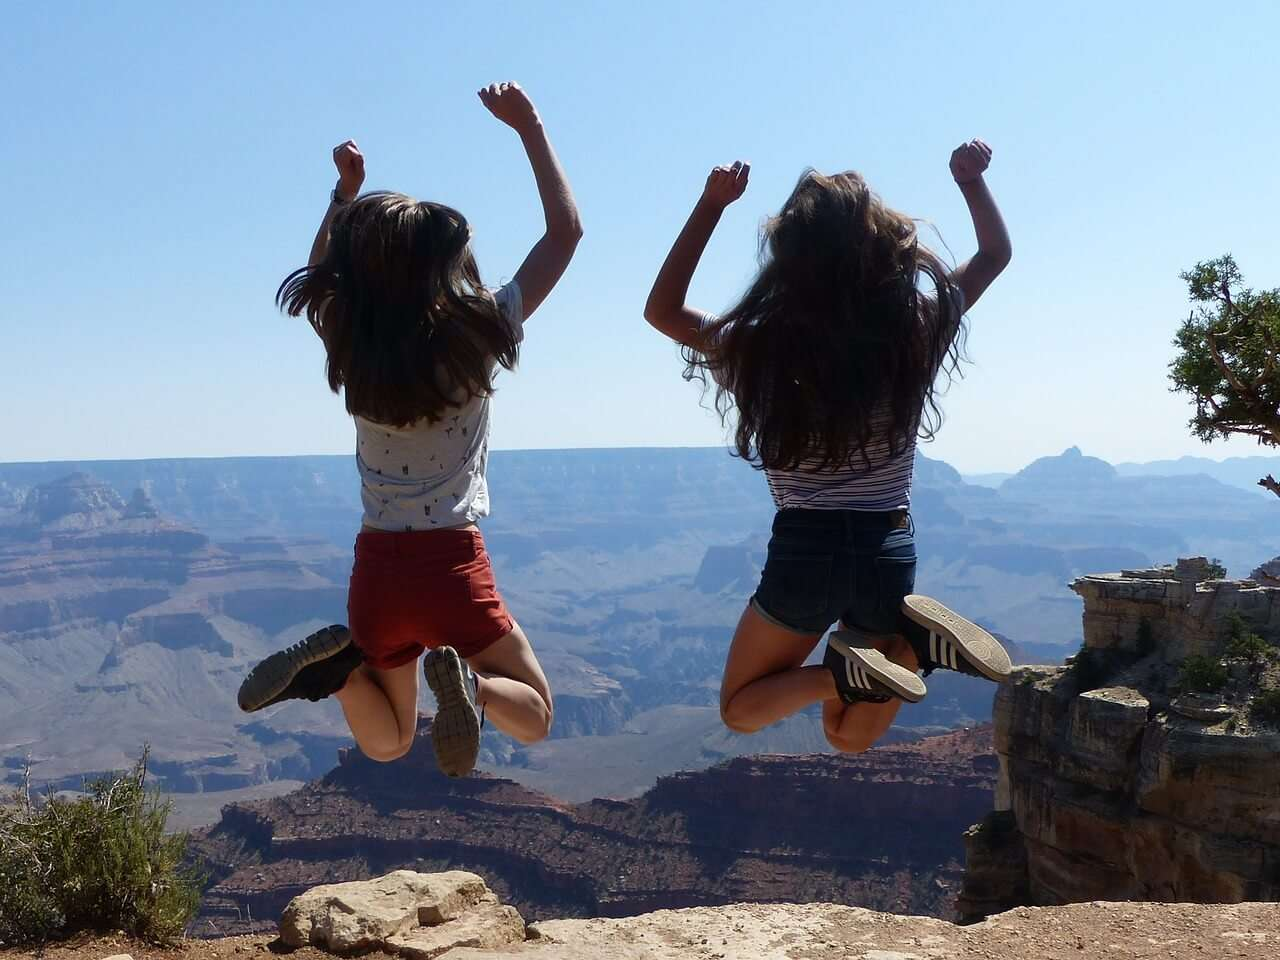 Girls Jumping Near Grand Canyon,USA